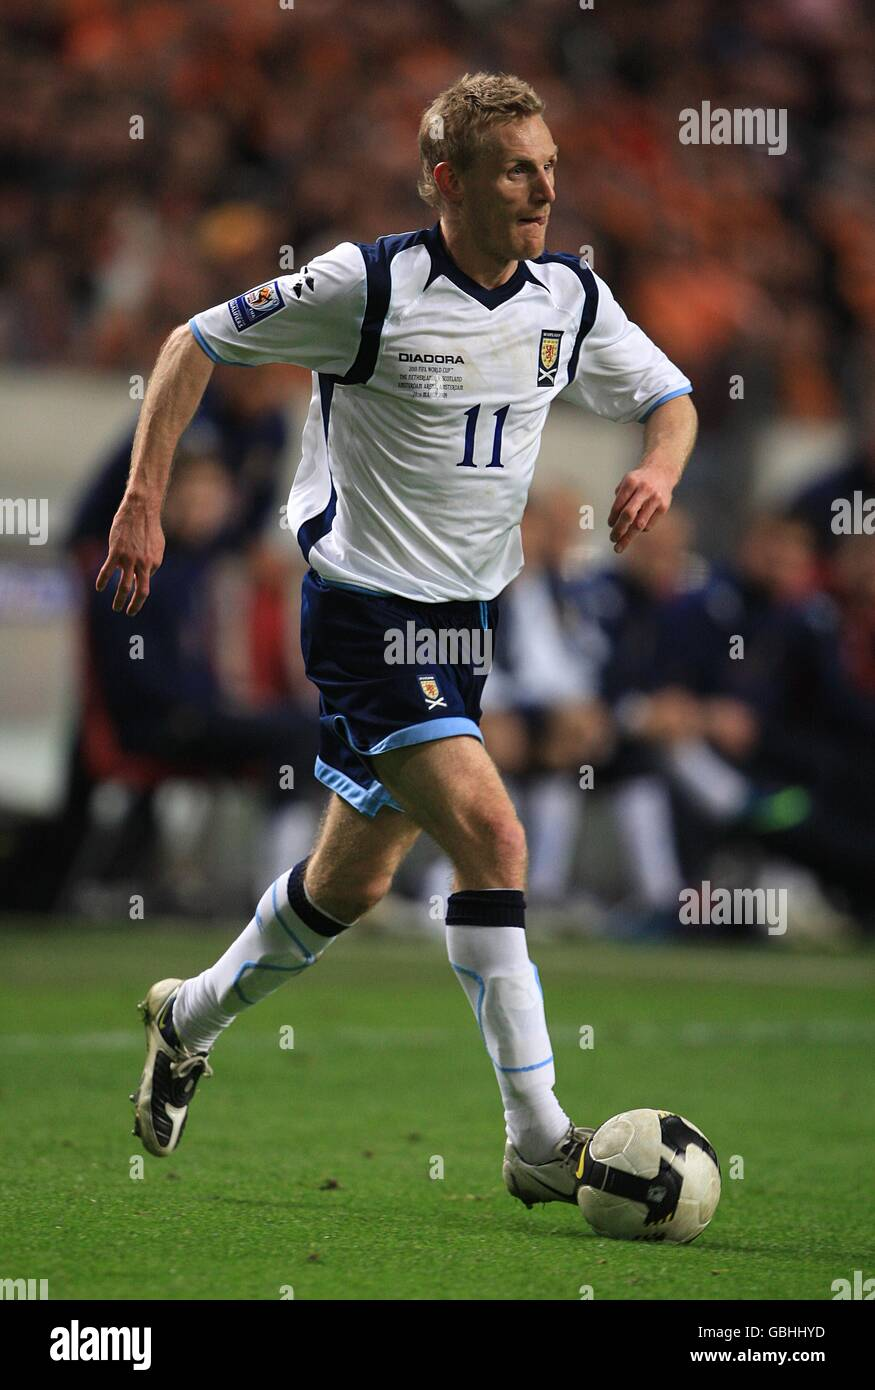 Soccer - FIFA World Cup 2010 - Qualifying Round - Group Nine - Holland v Scotland - Amsterdam ArenA - Stock Image